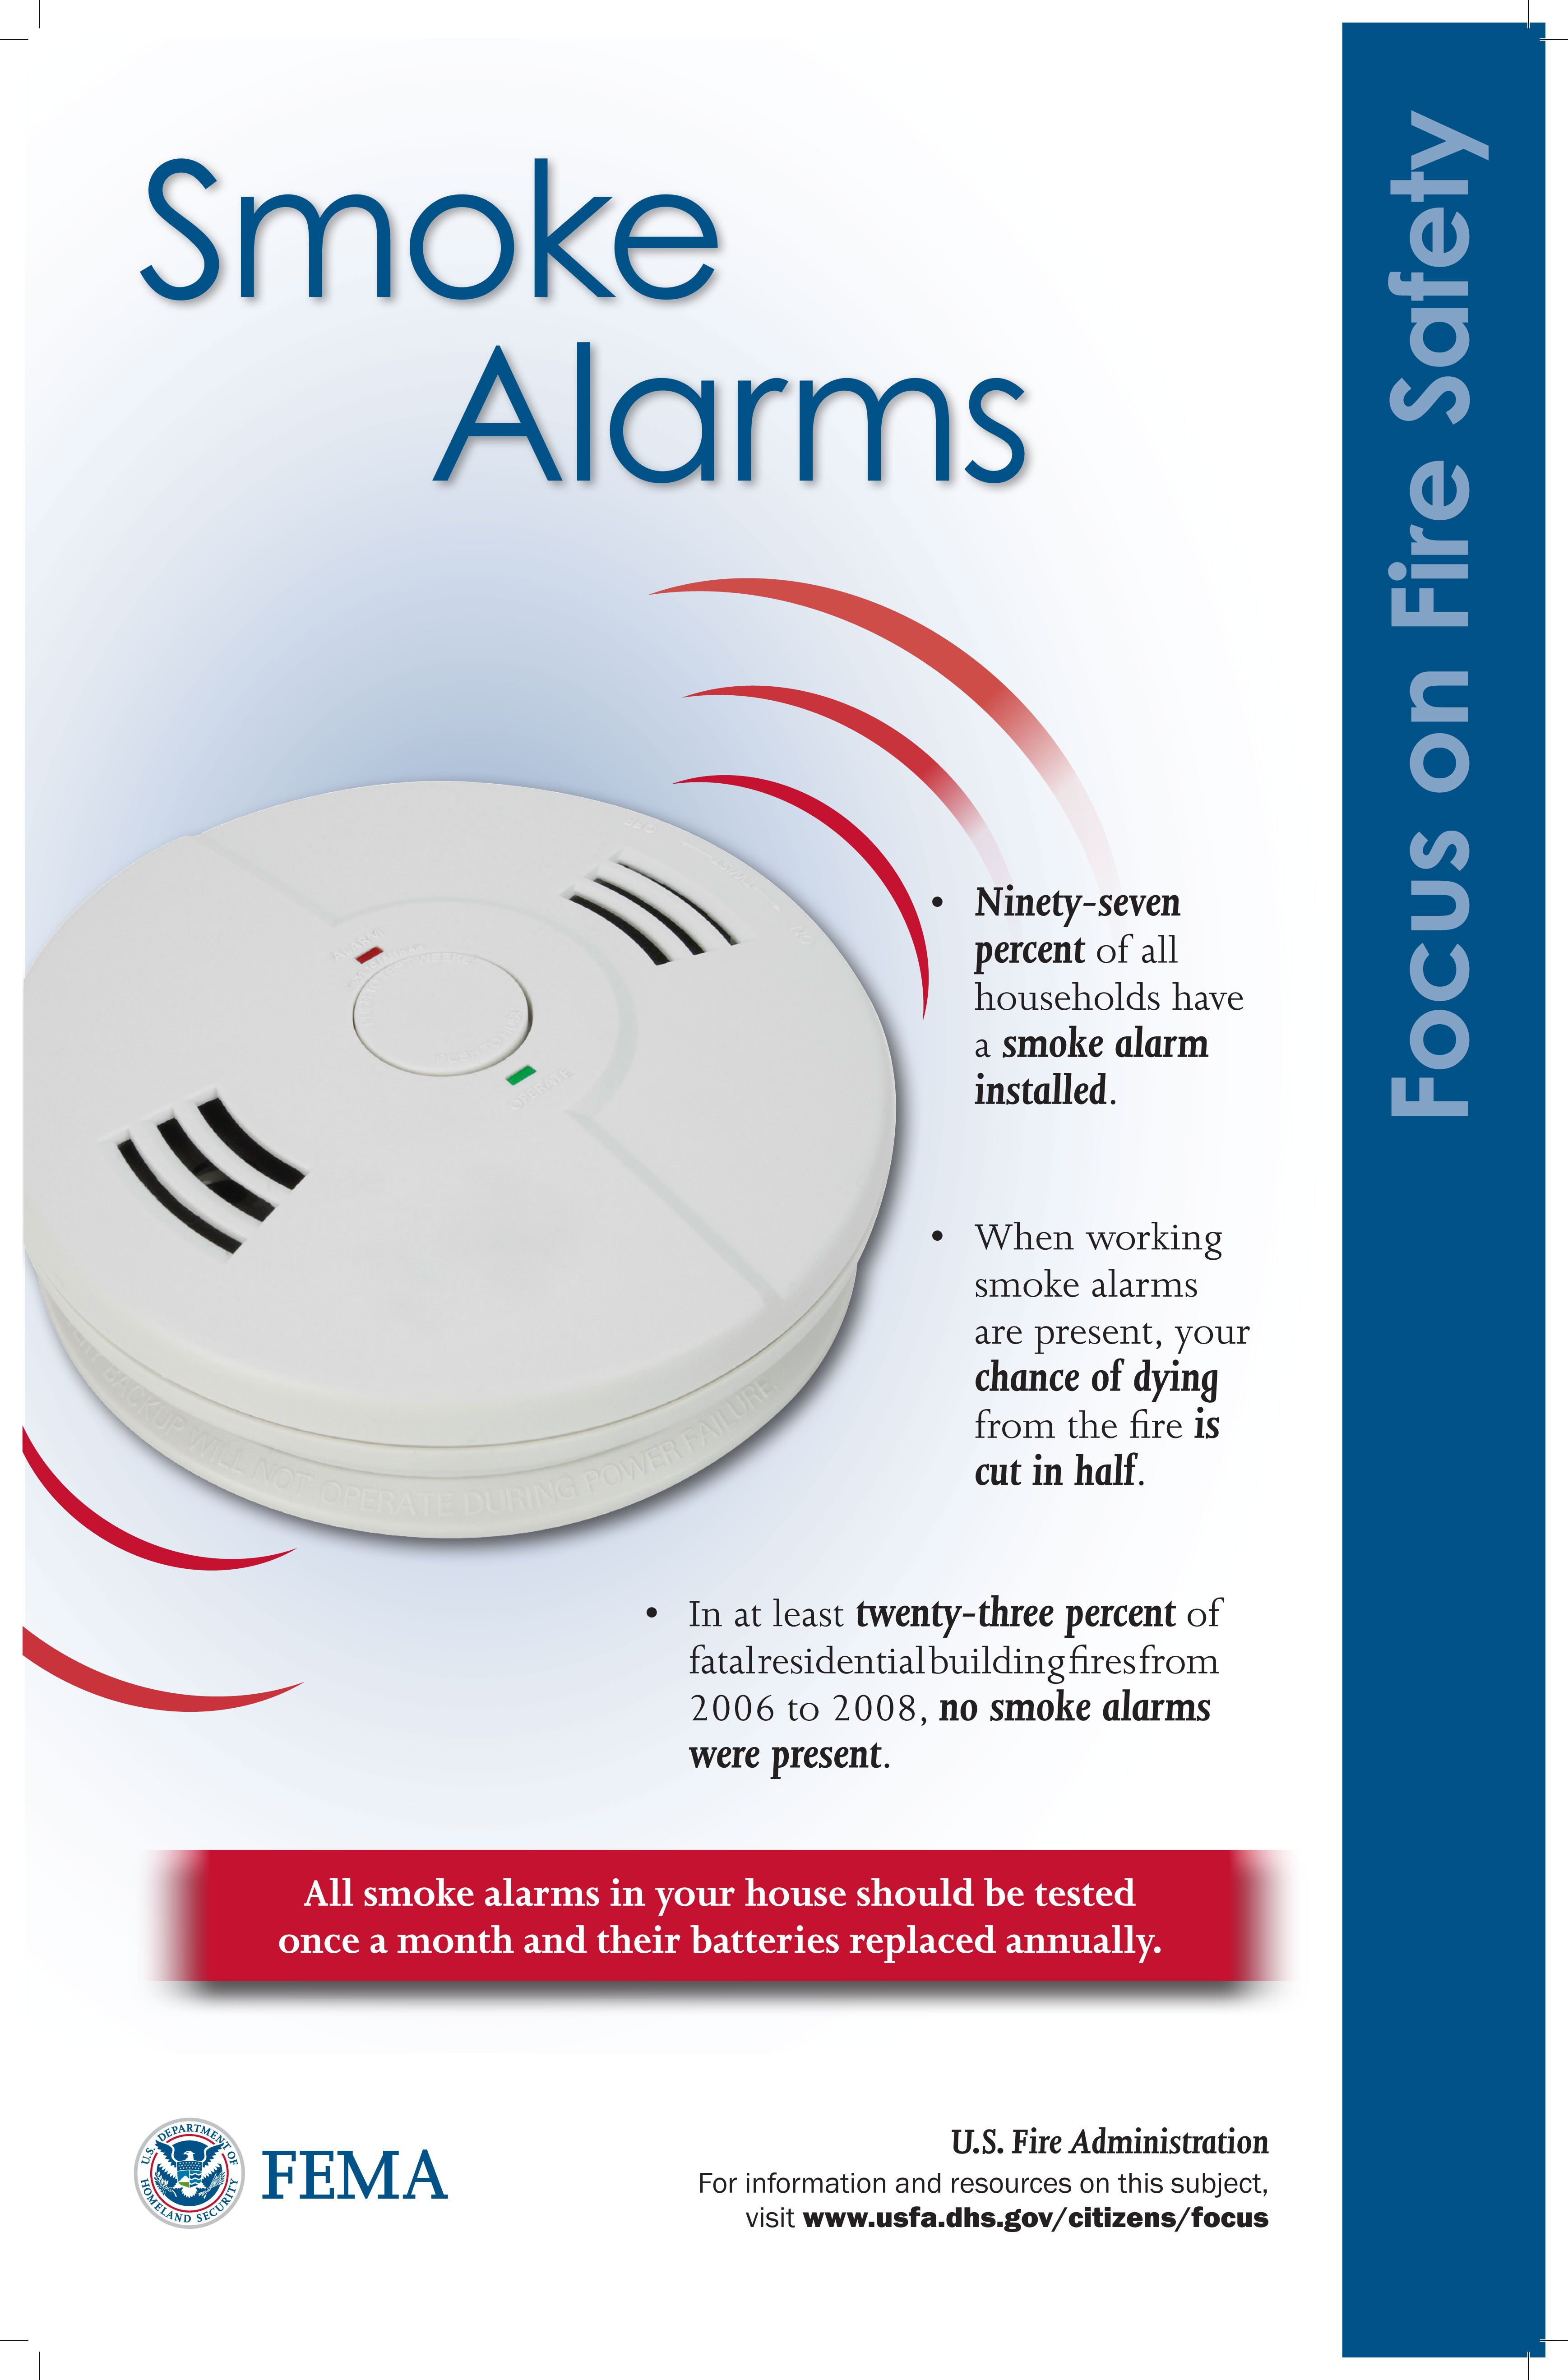 small resolution of smoke alarms fire safety poster safety posters smoke alarms firefighter firefighter bar